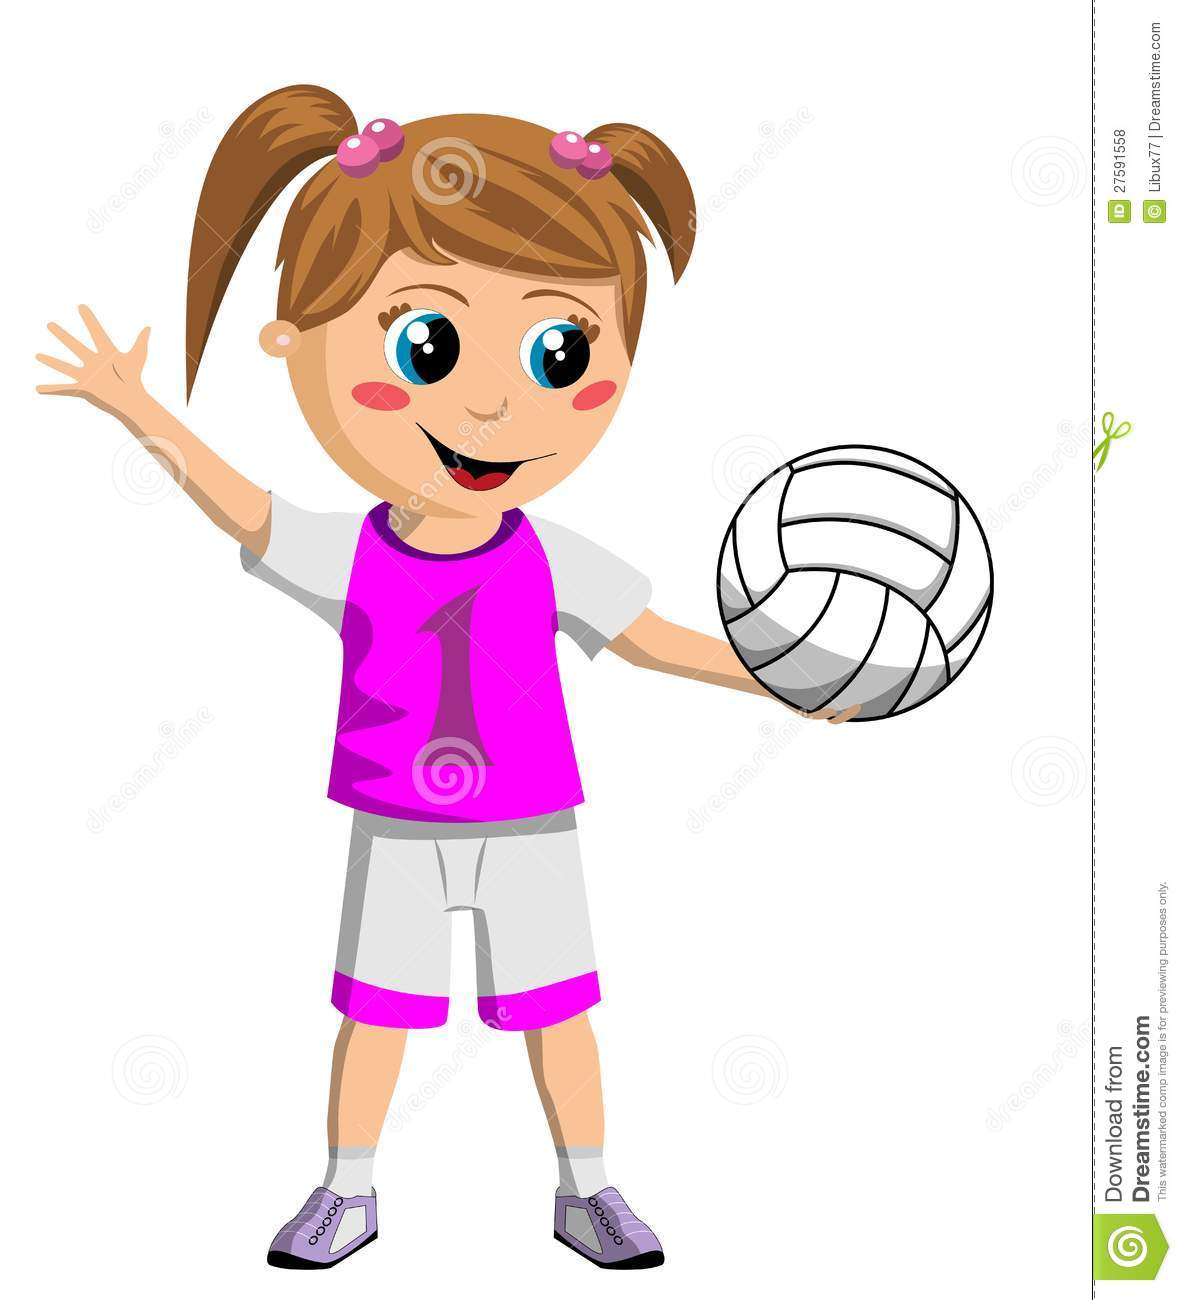 ... can find different kids or children playing sports in my portfolio